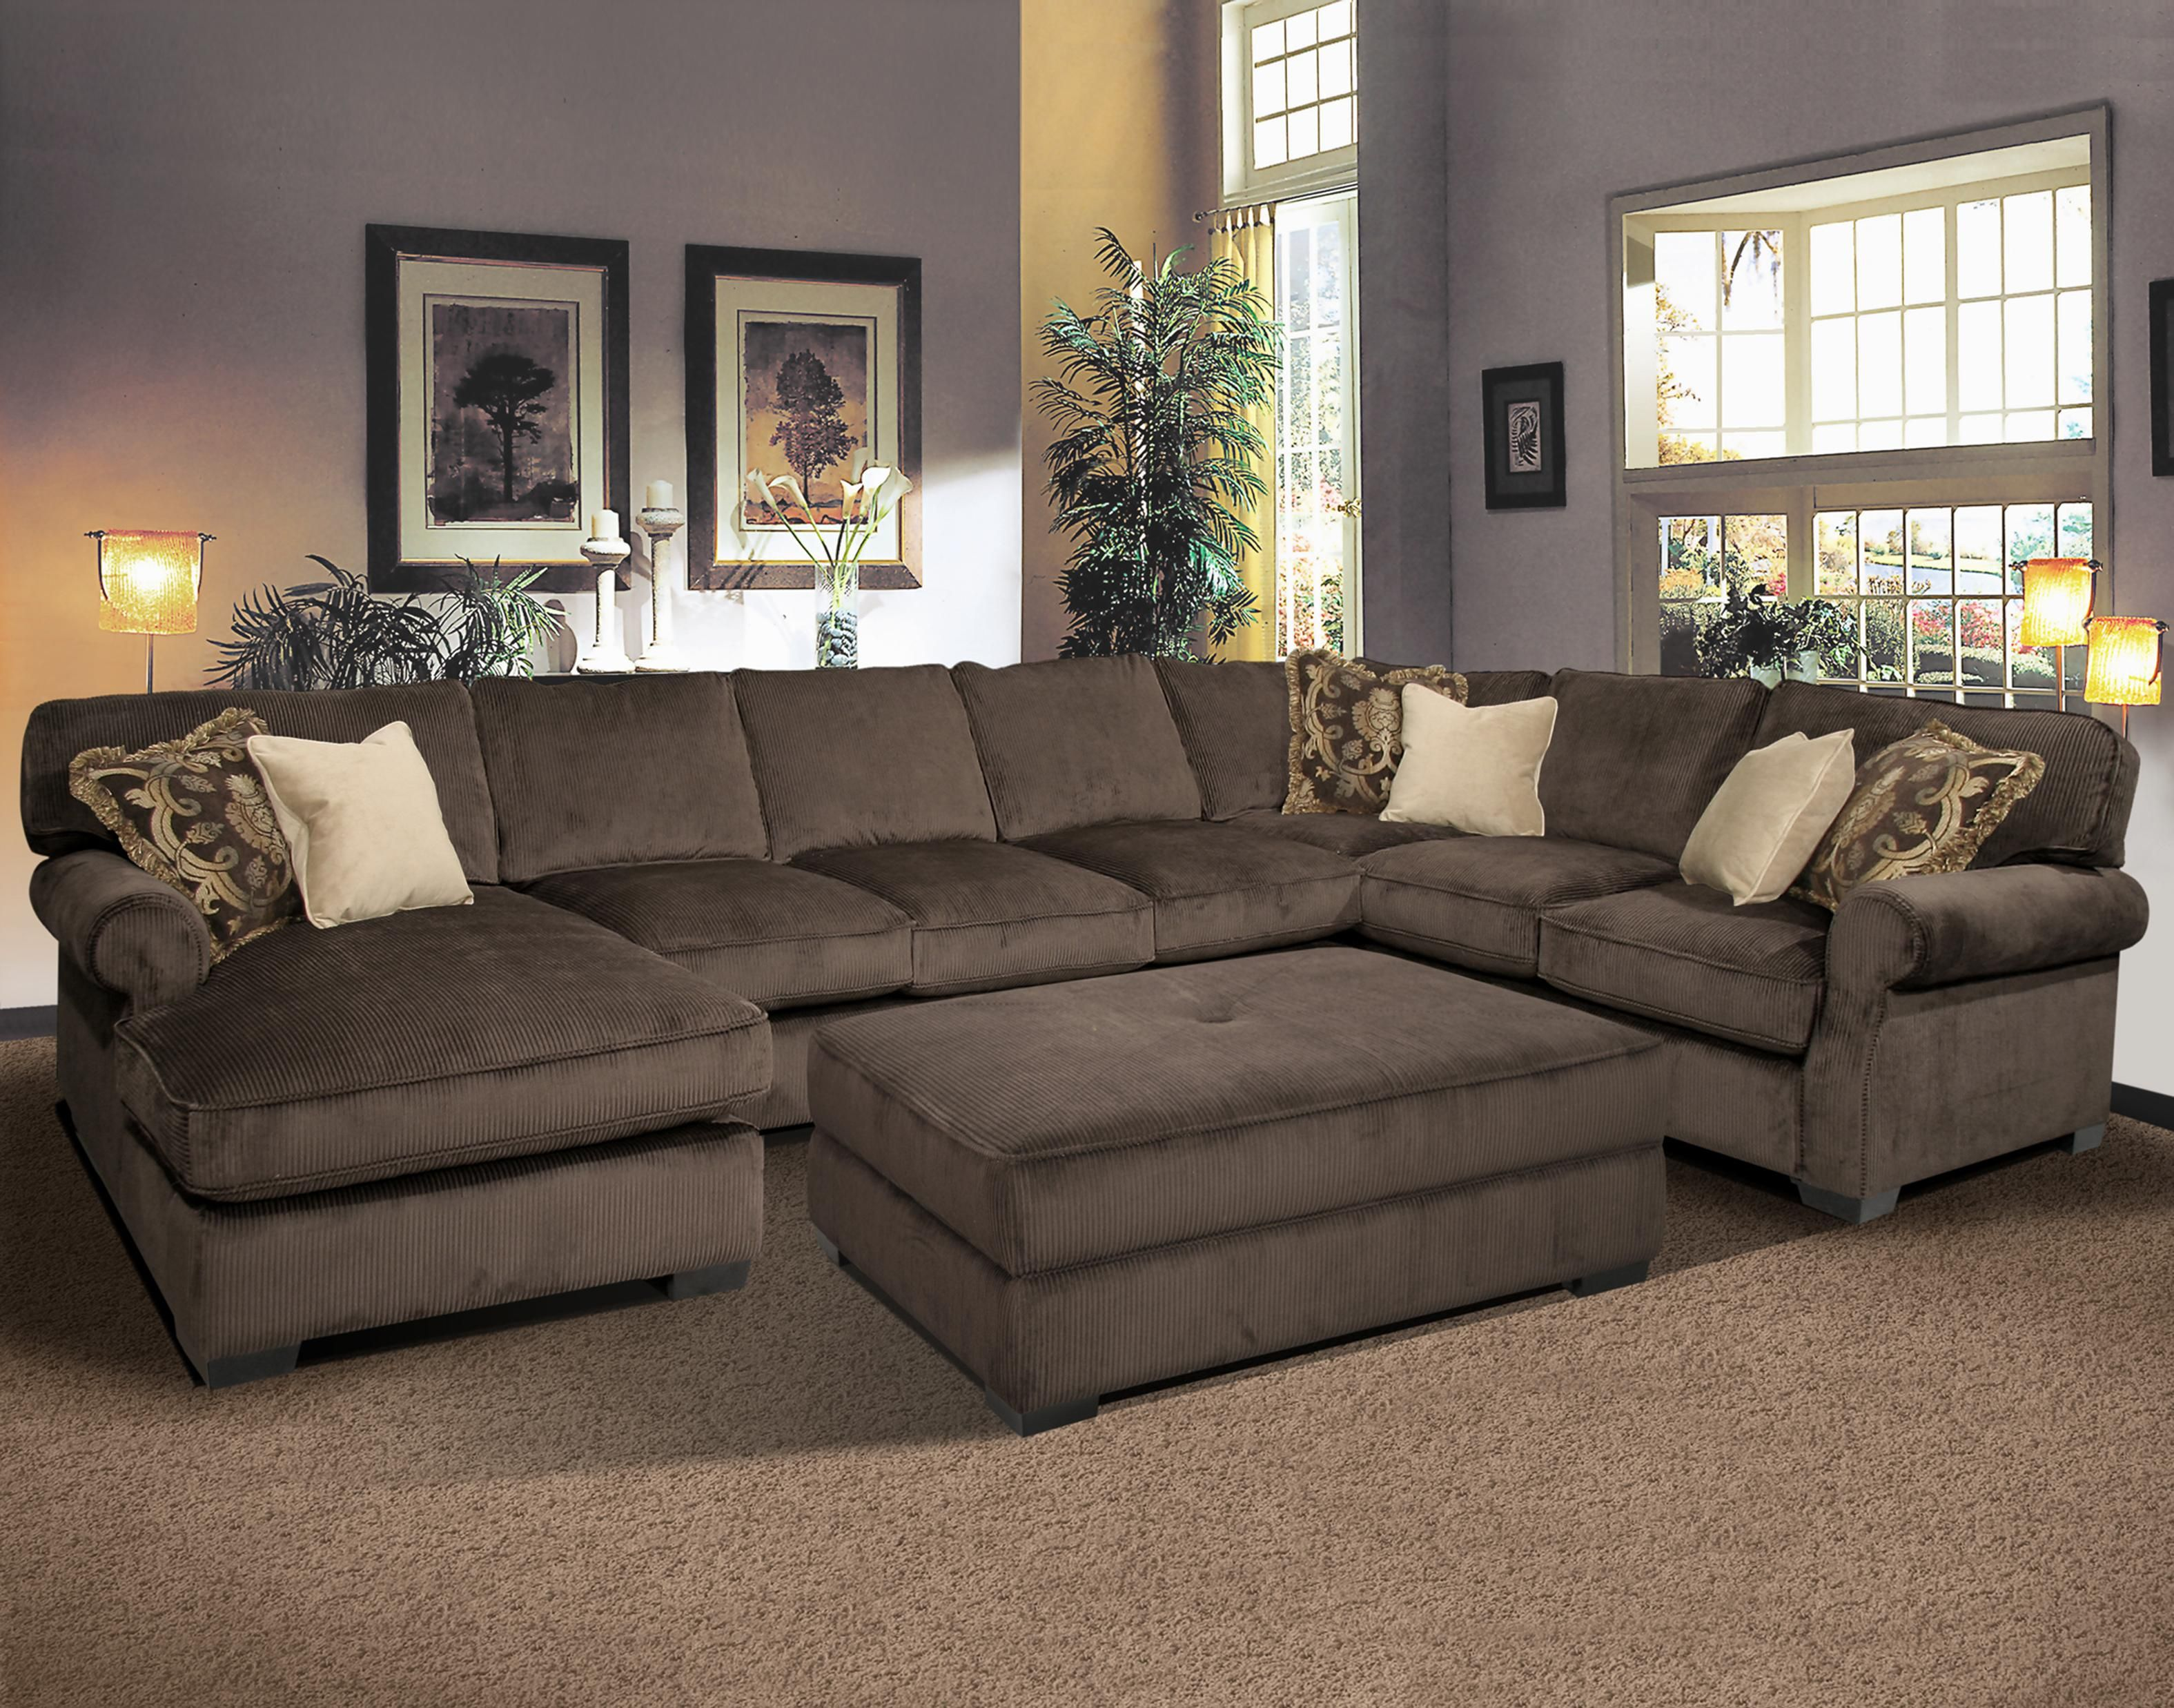 Grand Island Oversized Cocktail Ottoman for Sectional Sofa by Fairmont Seating - Ruby Gordon Home Furnishings : microfiber sectional sofa with ottoman - Sectionals, Sofas & Couches